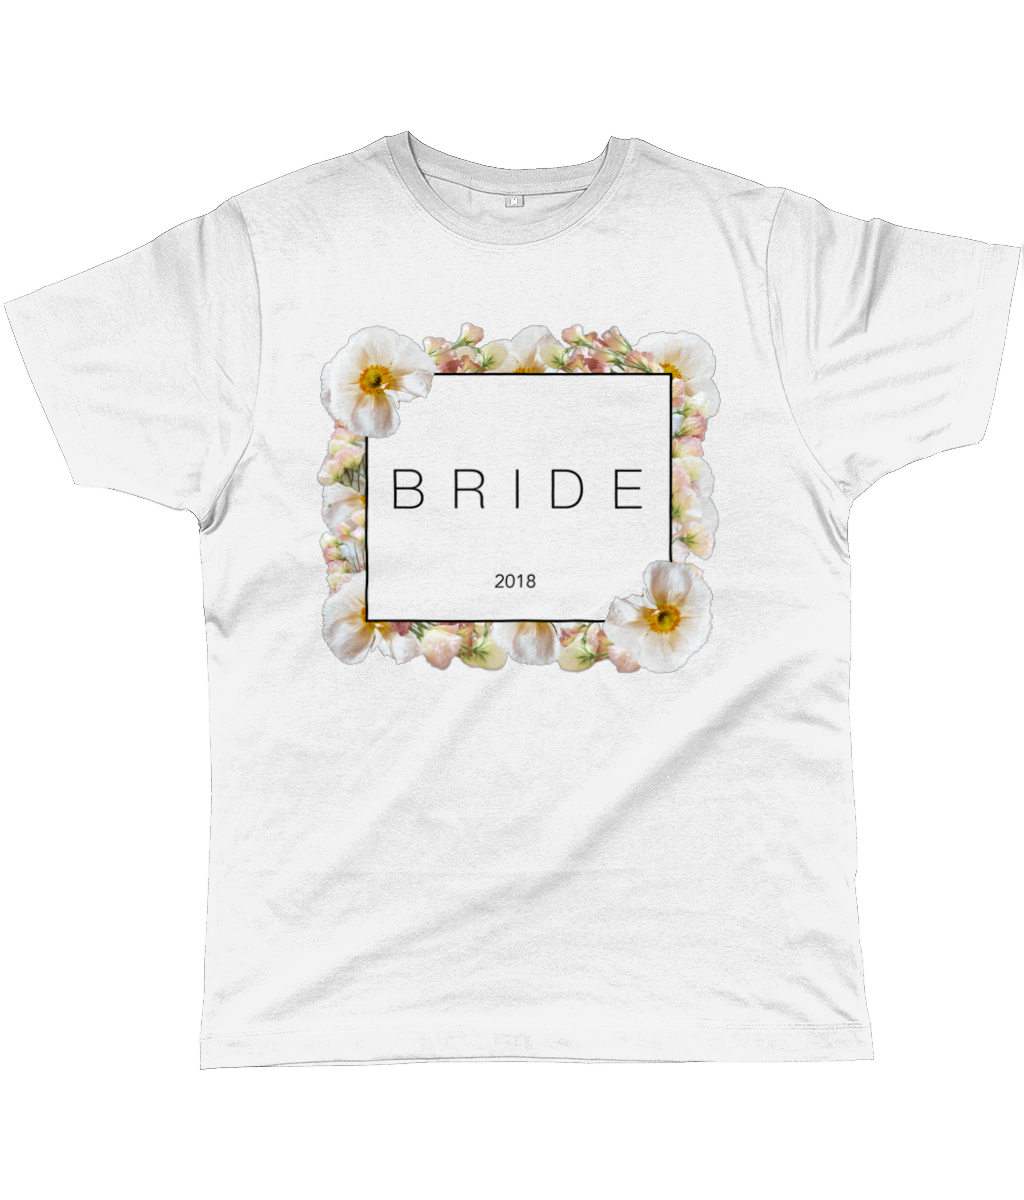 BRIDE Floral Block Unisex Fit Tee - 2018 - UK and EU